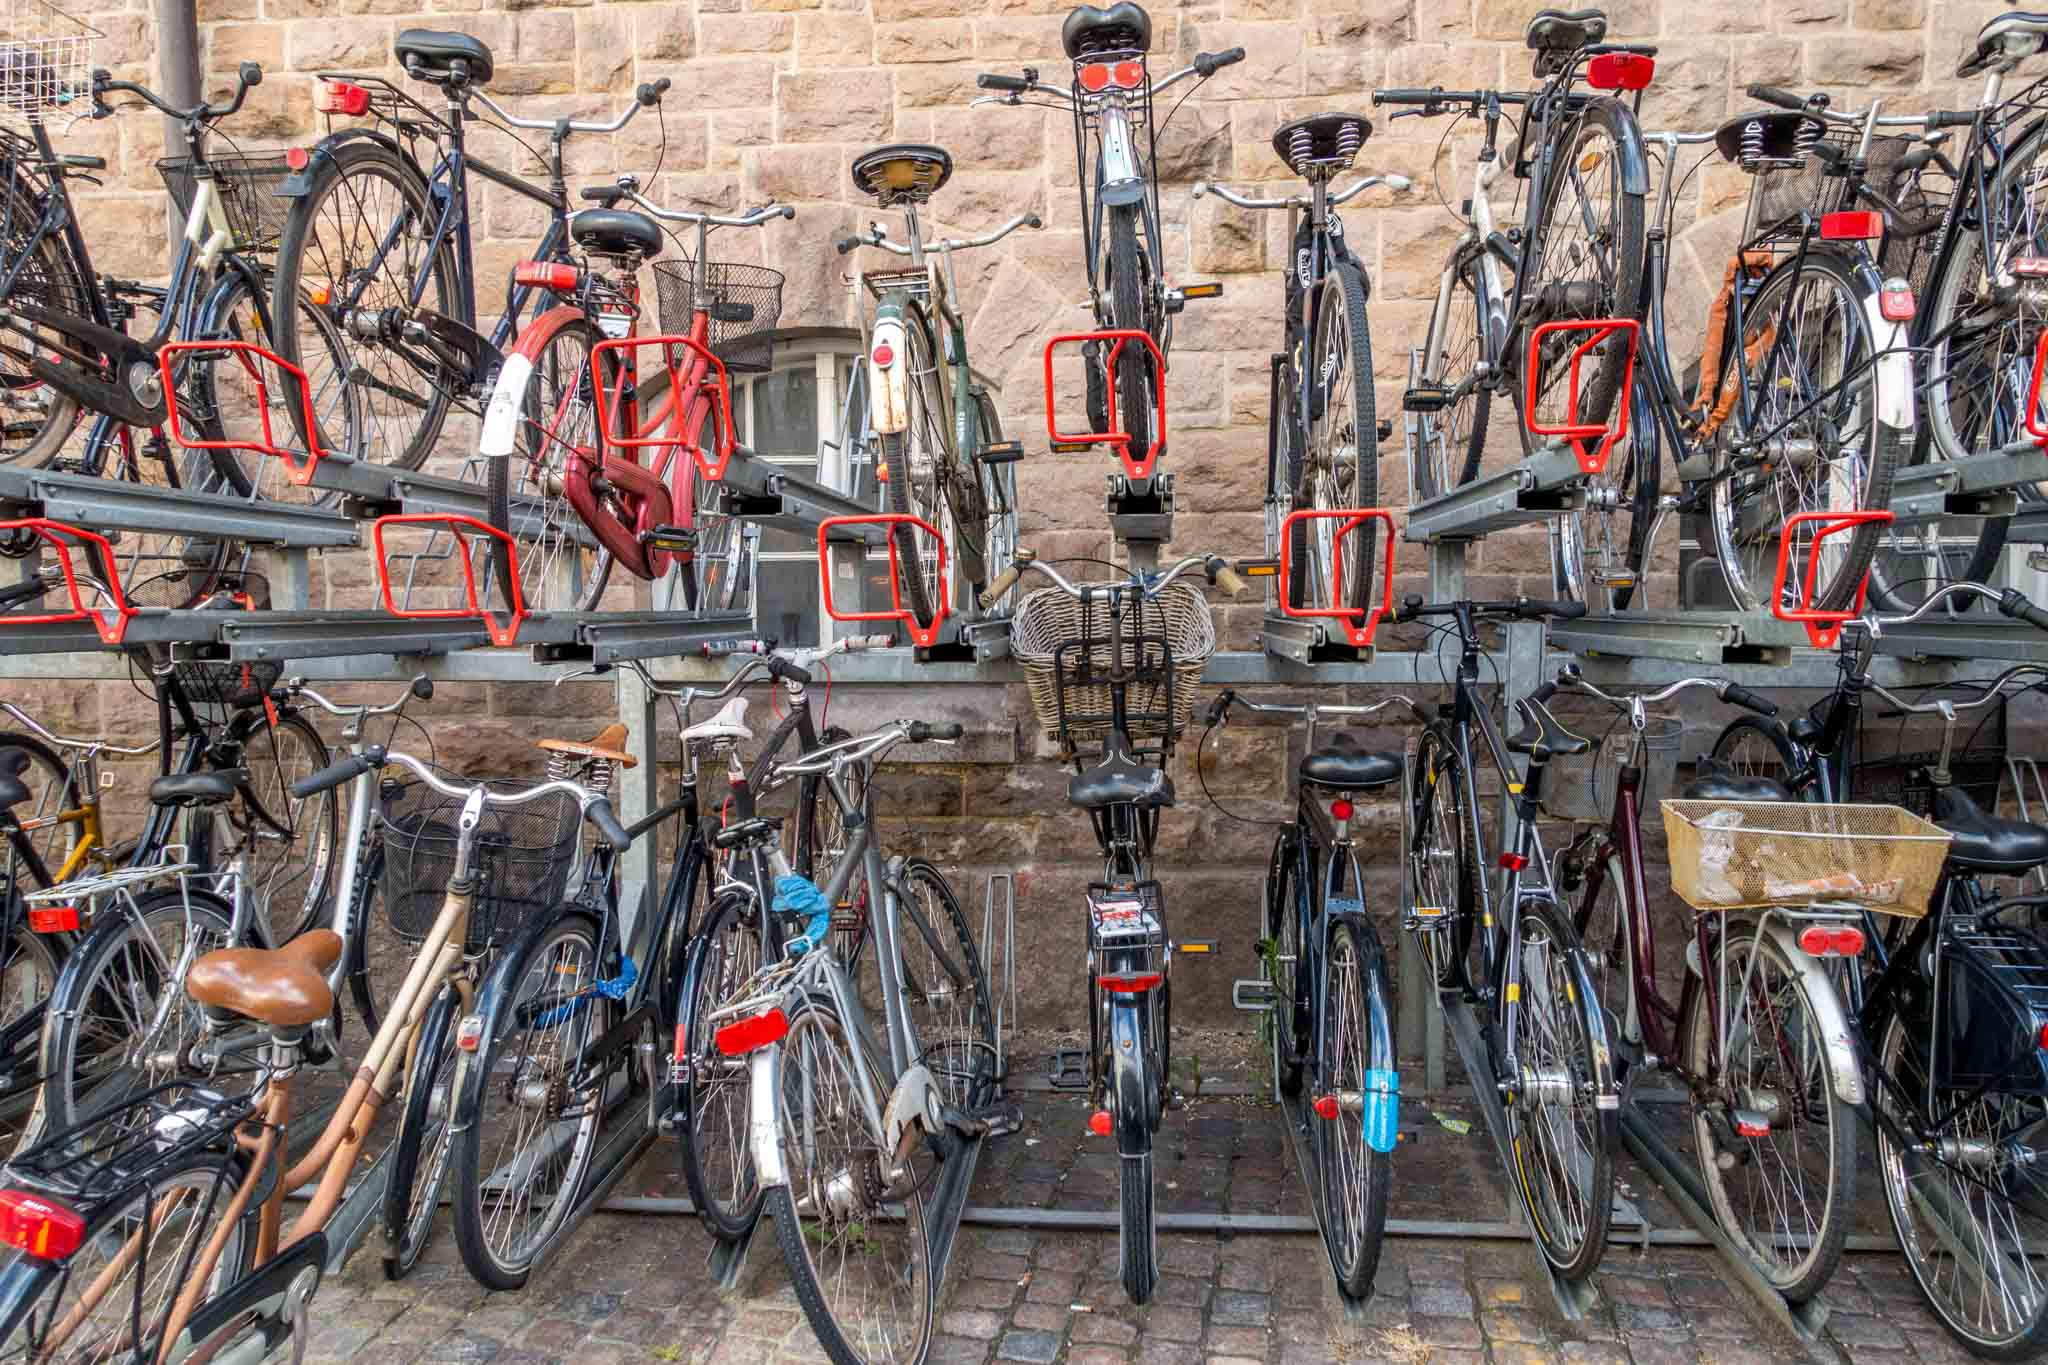 Riding a bicycle is one of the best things to do in Denmark if you want to look like a local